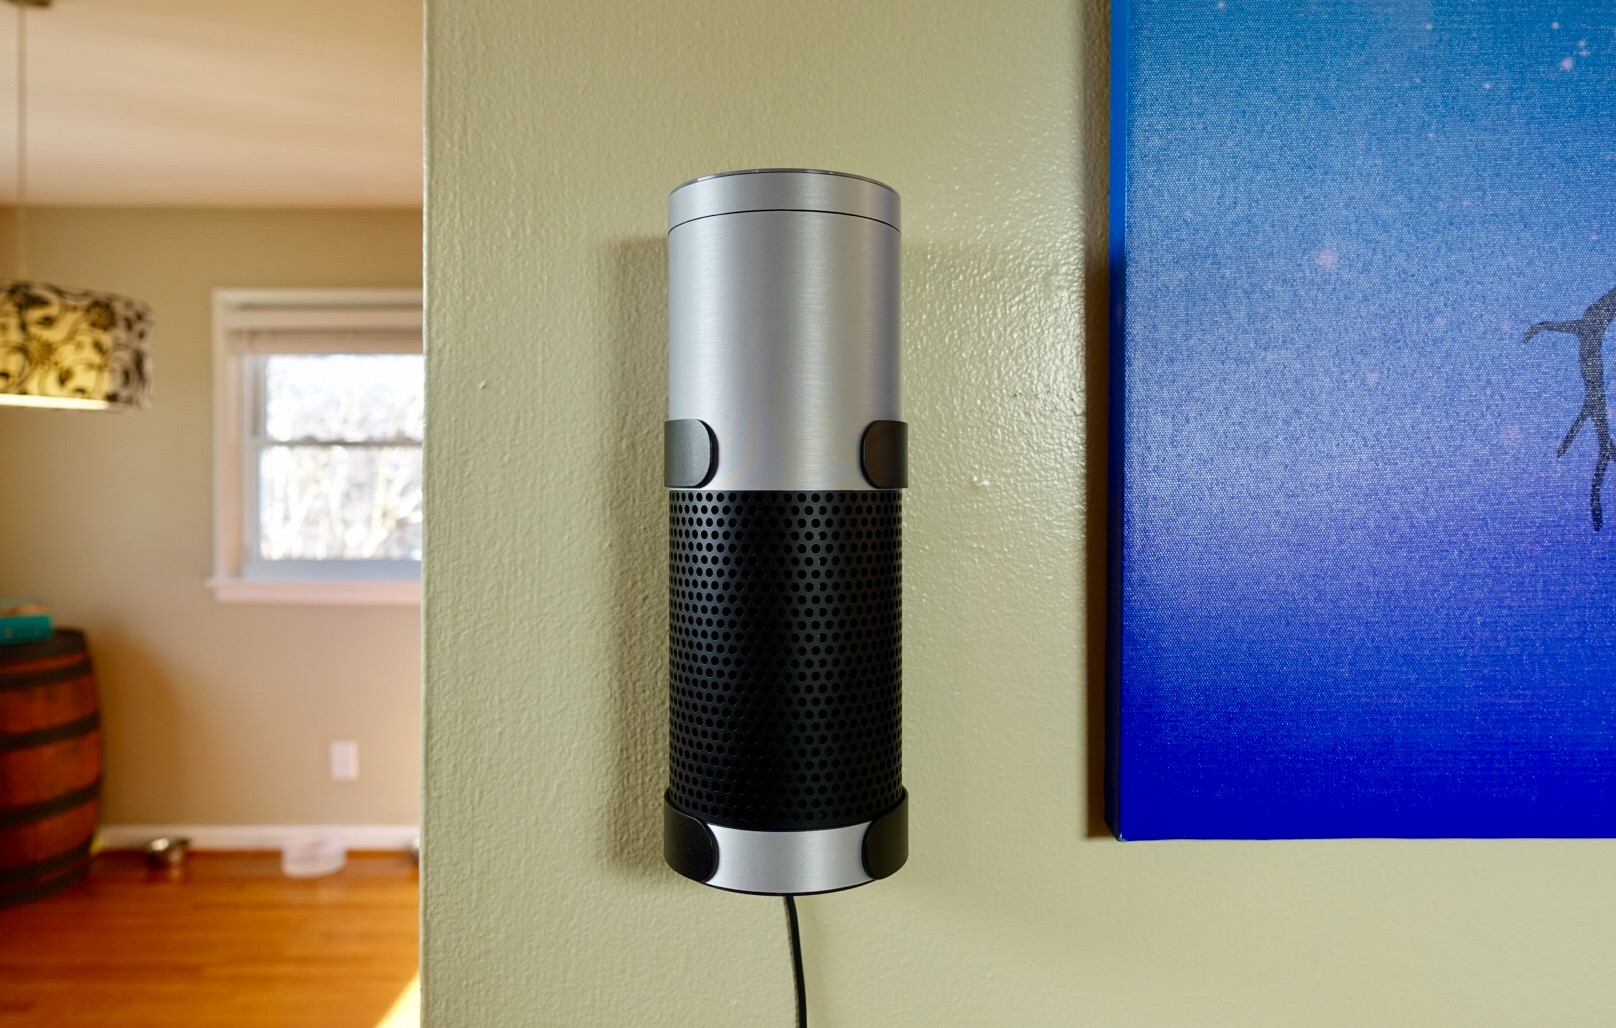 amazon-echo-wall-mount-1.jpg